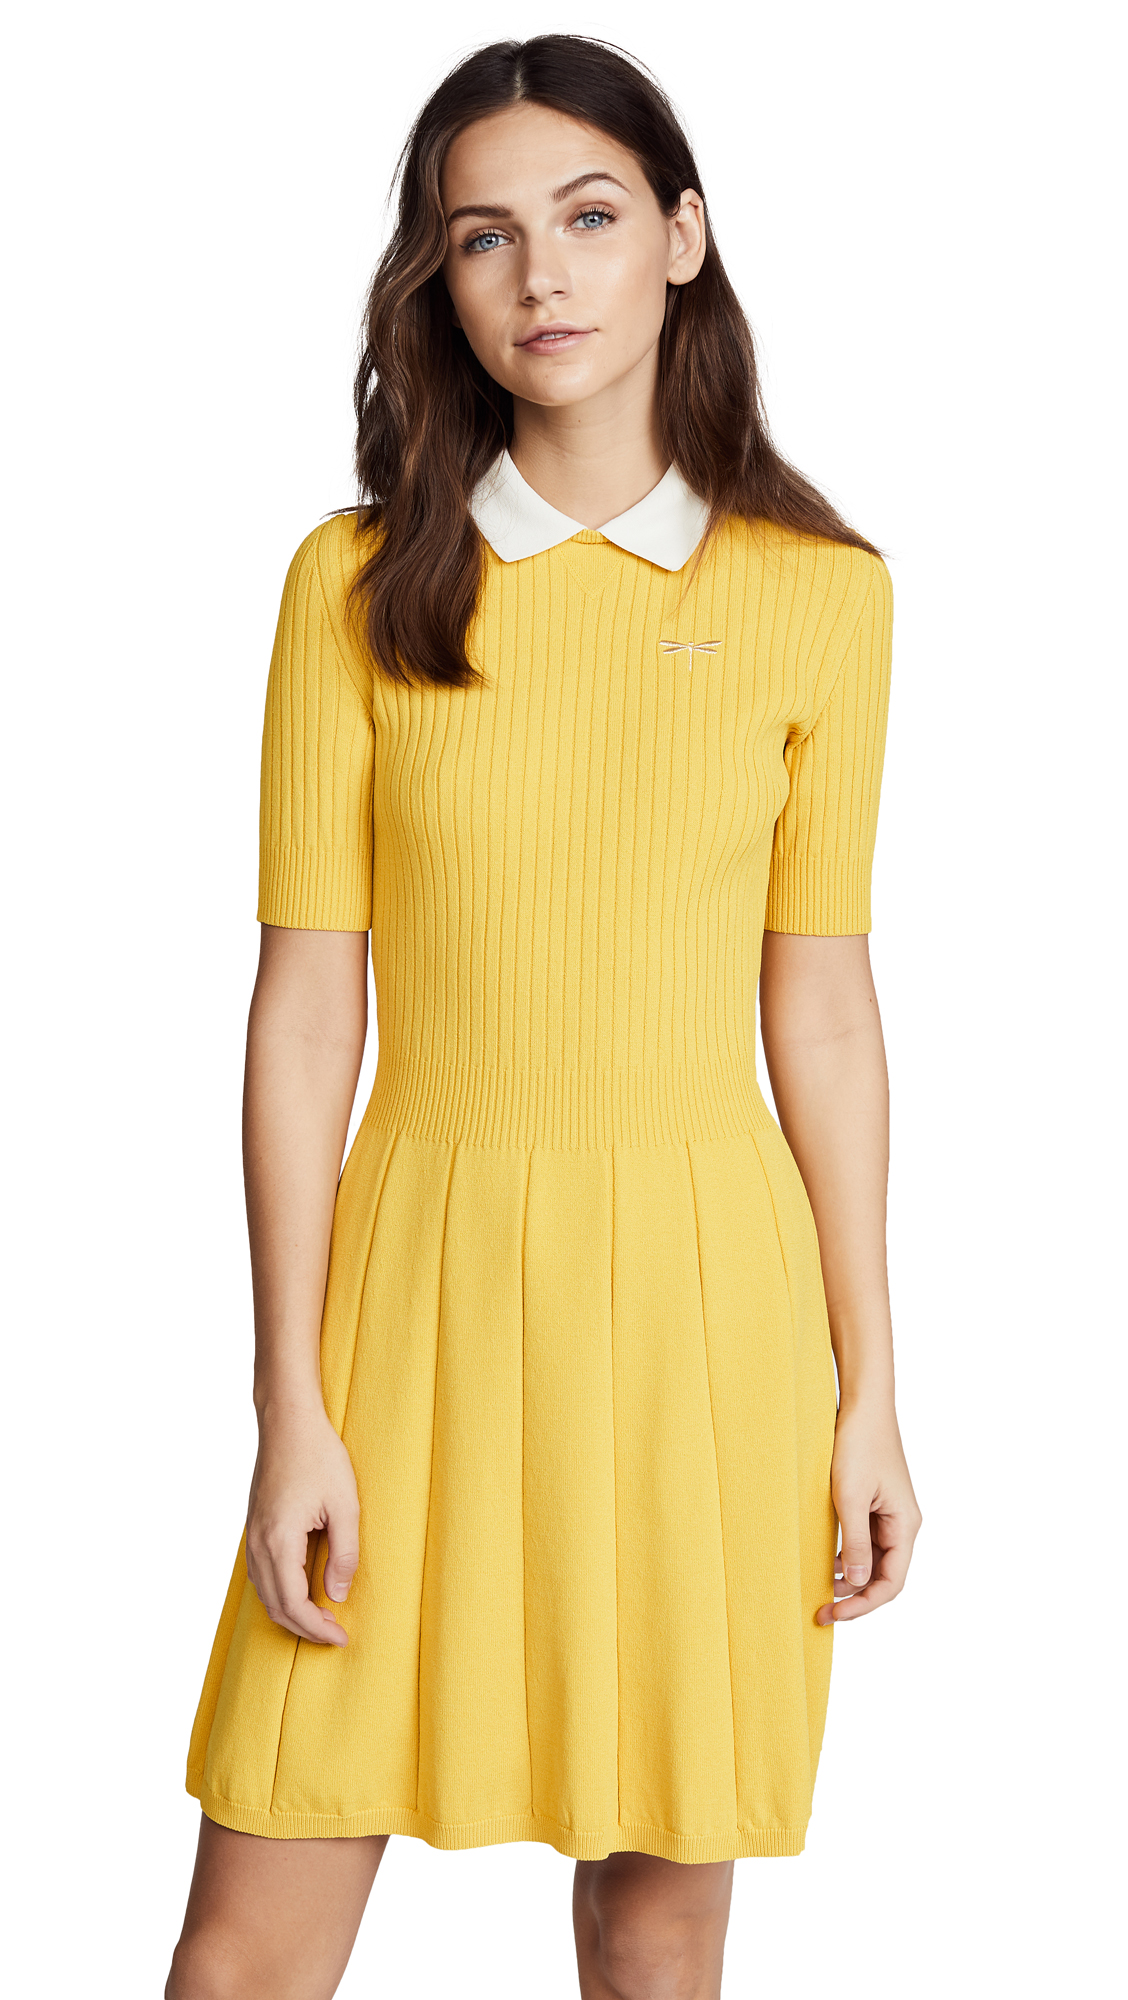 RED Valentino Collared Flare Dress - Topazio